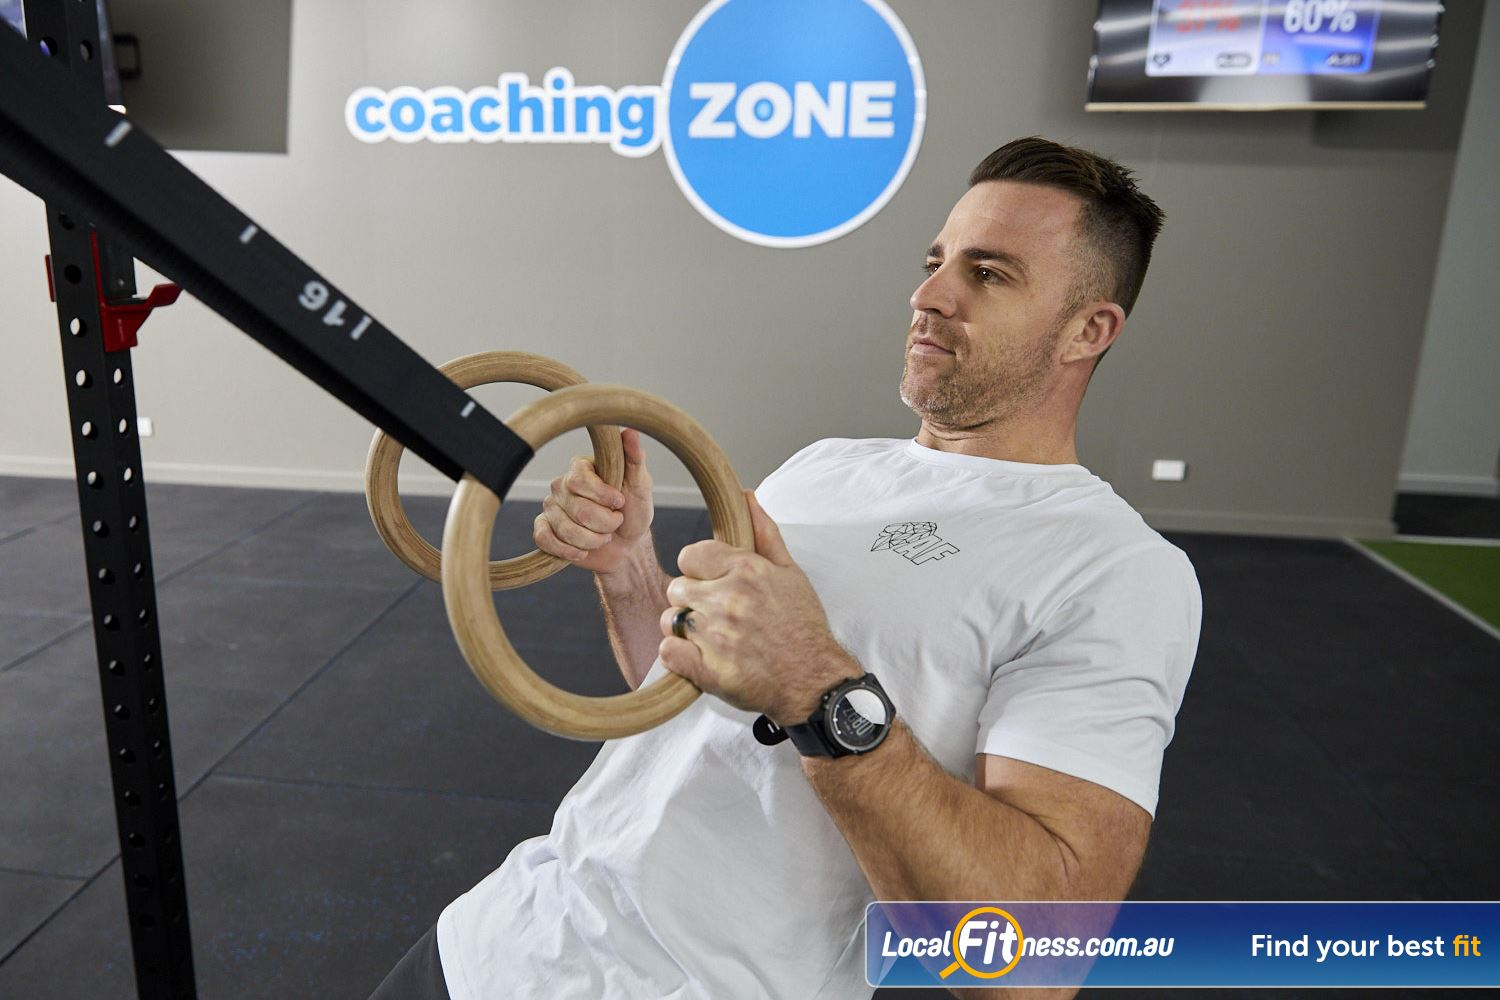 Coaching Zone Ferntree Gully Challenge your body-weight fitness with the gymnastic rings.